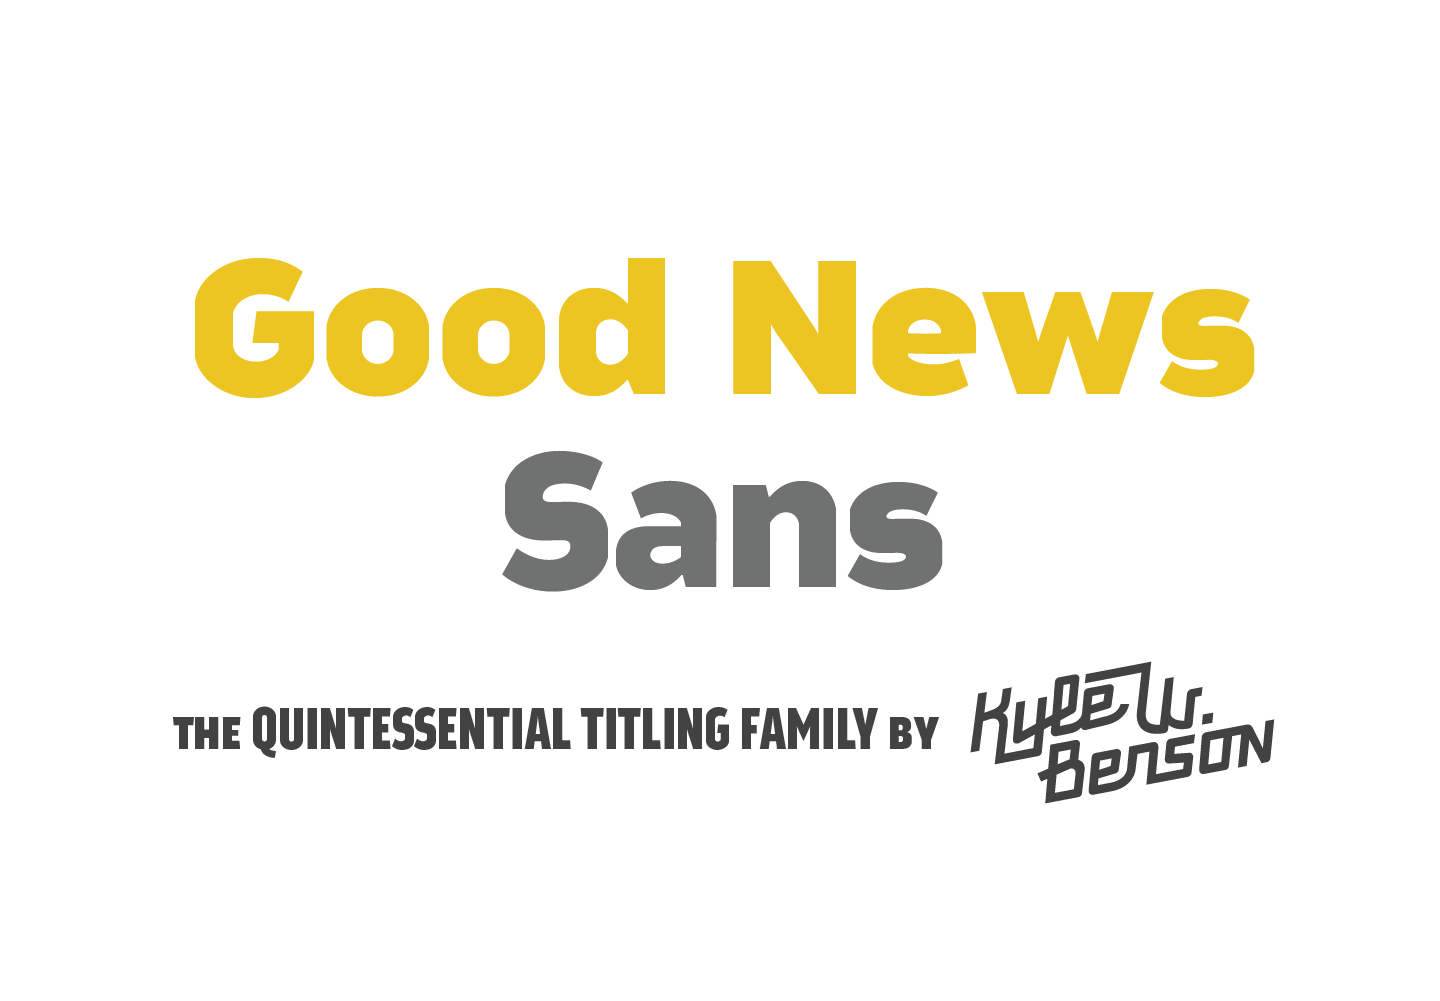 Good News Sans - Retro Mart